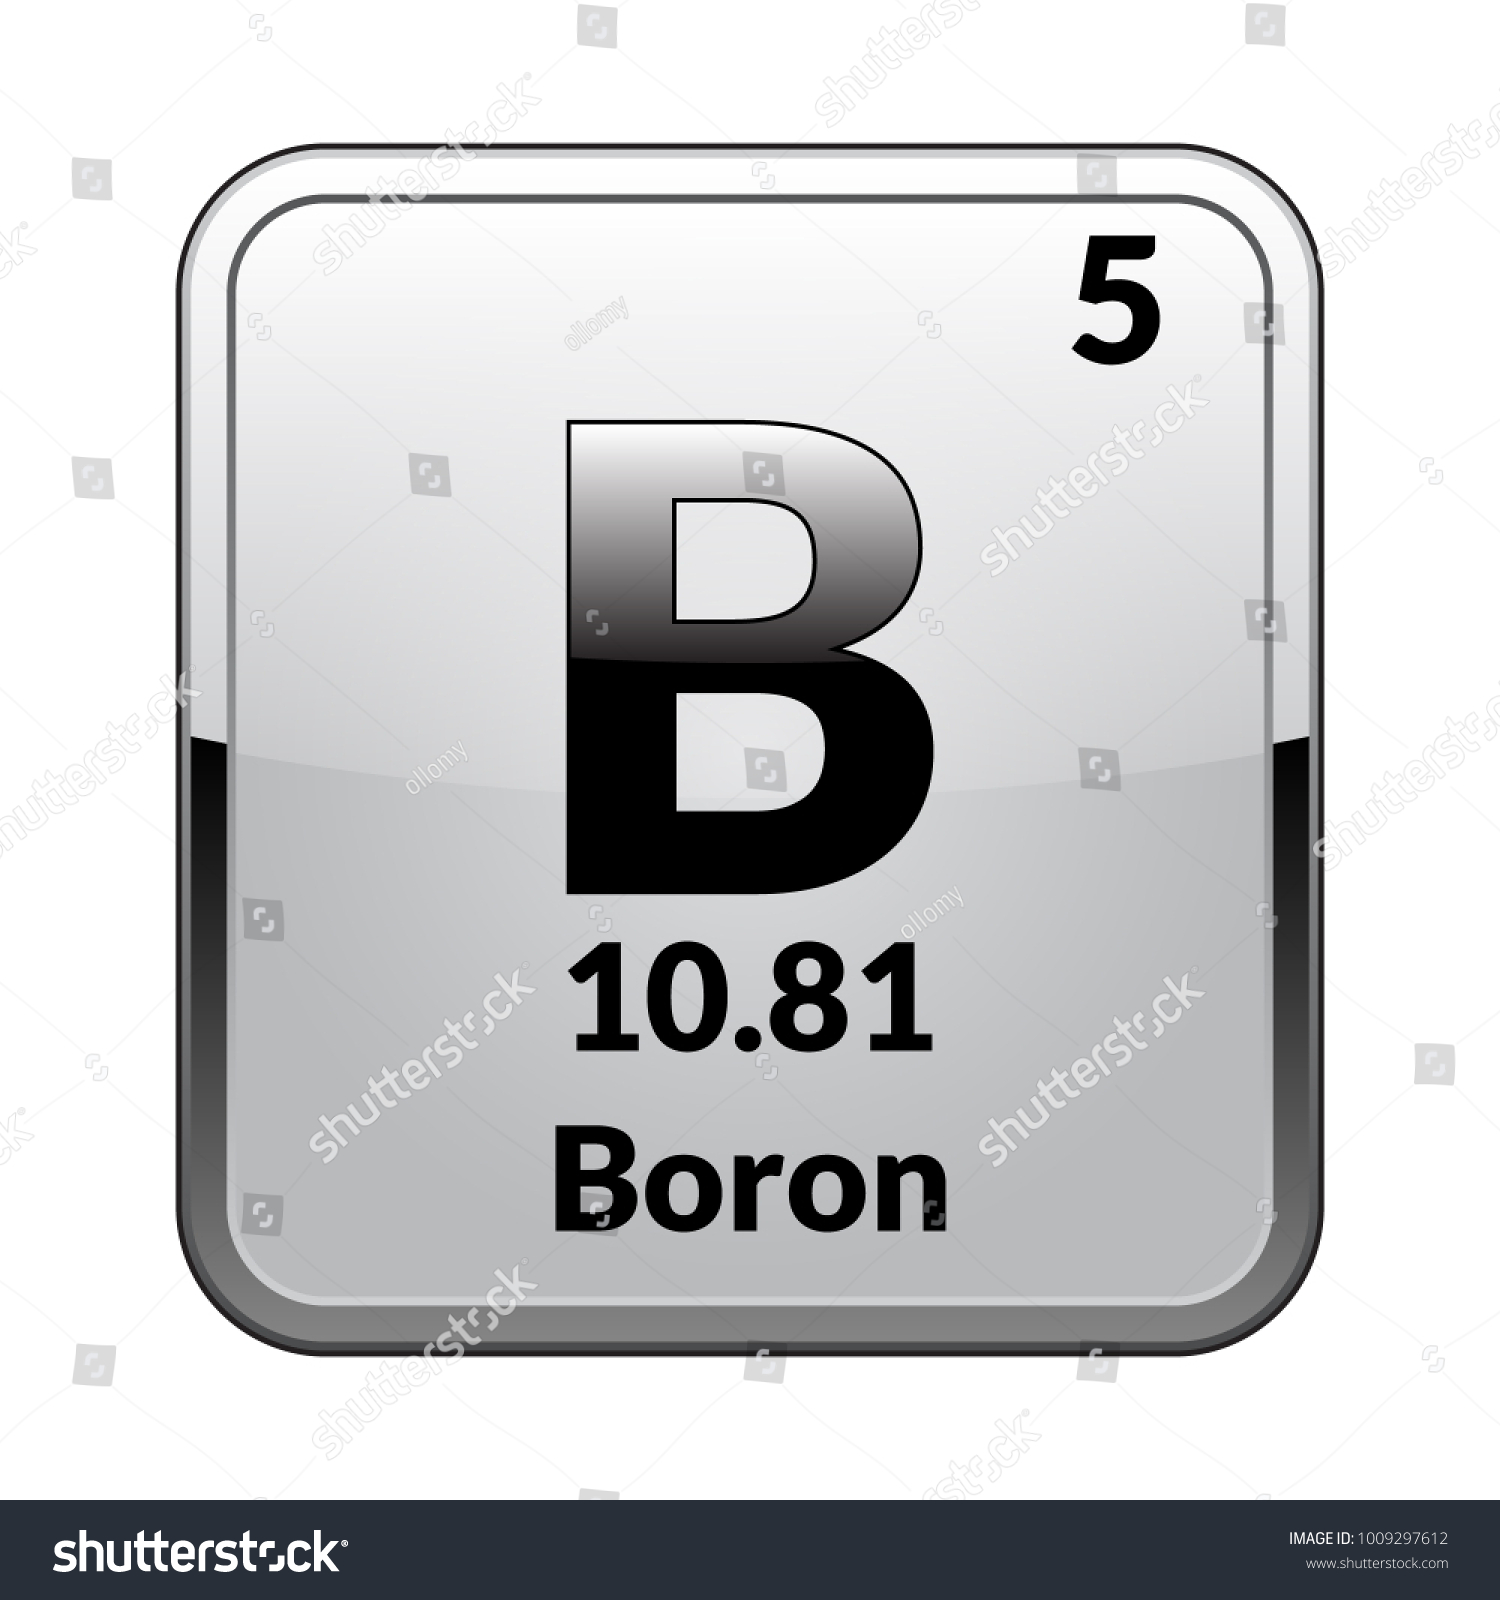 boron symbolchemical element of the periodic table on a glossy white background in a